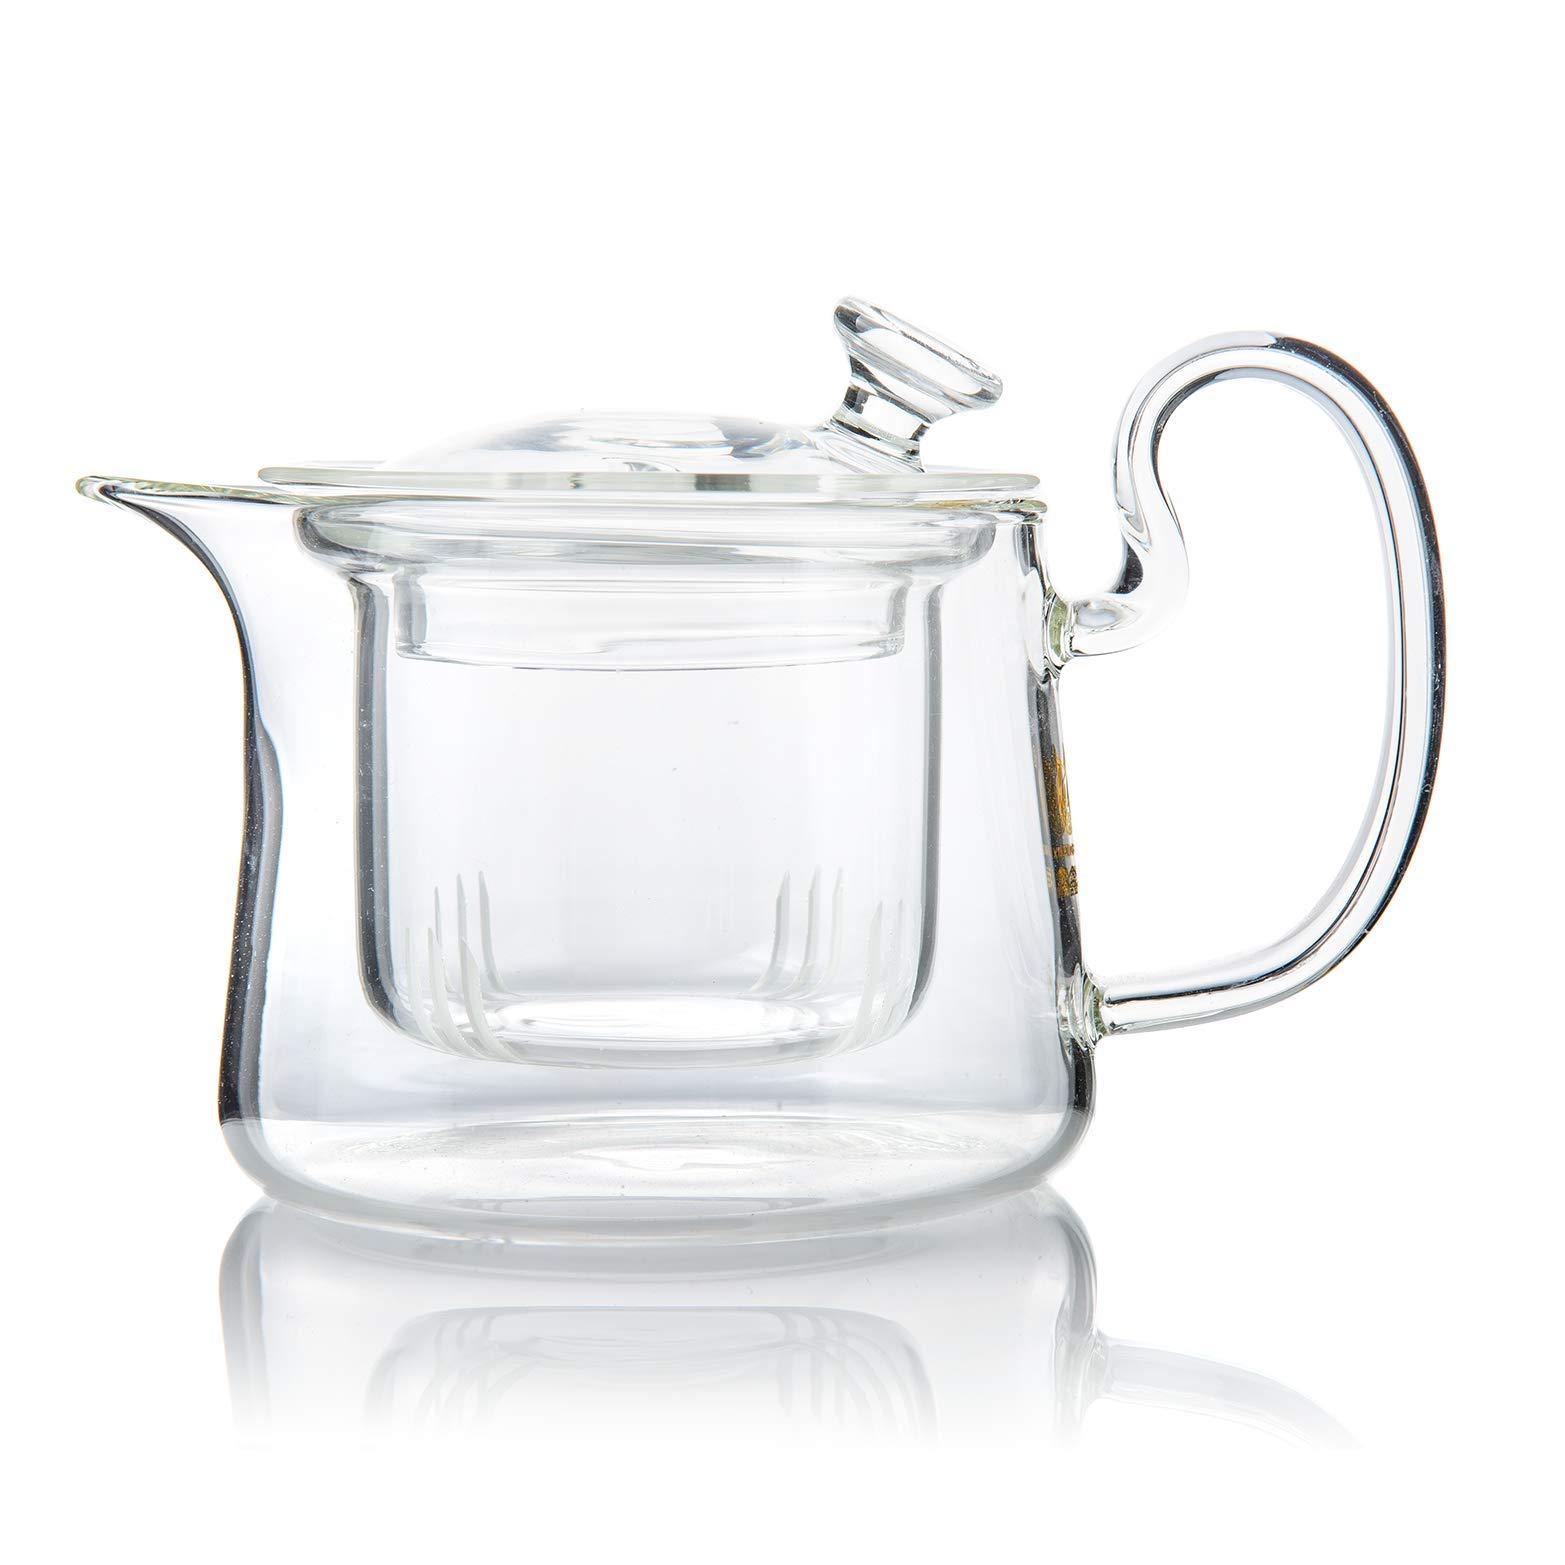 Modern Stylish Ultra Clear Heat Resistant Borosilicate Glass Teapot With Removable Glass Infuser - 300 ml / 10.1 oz